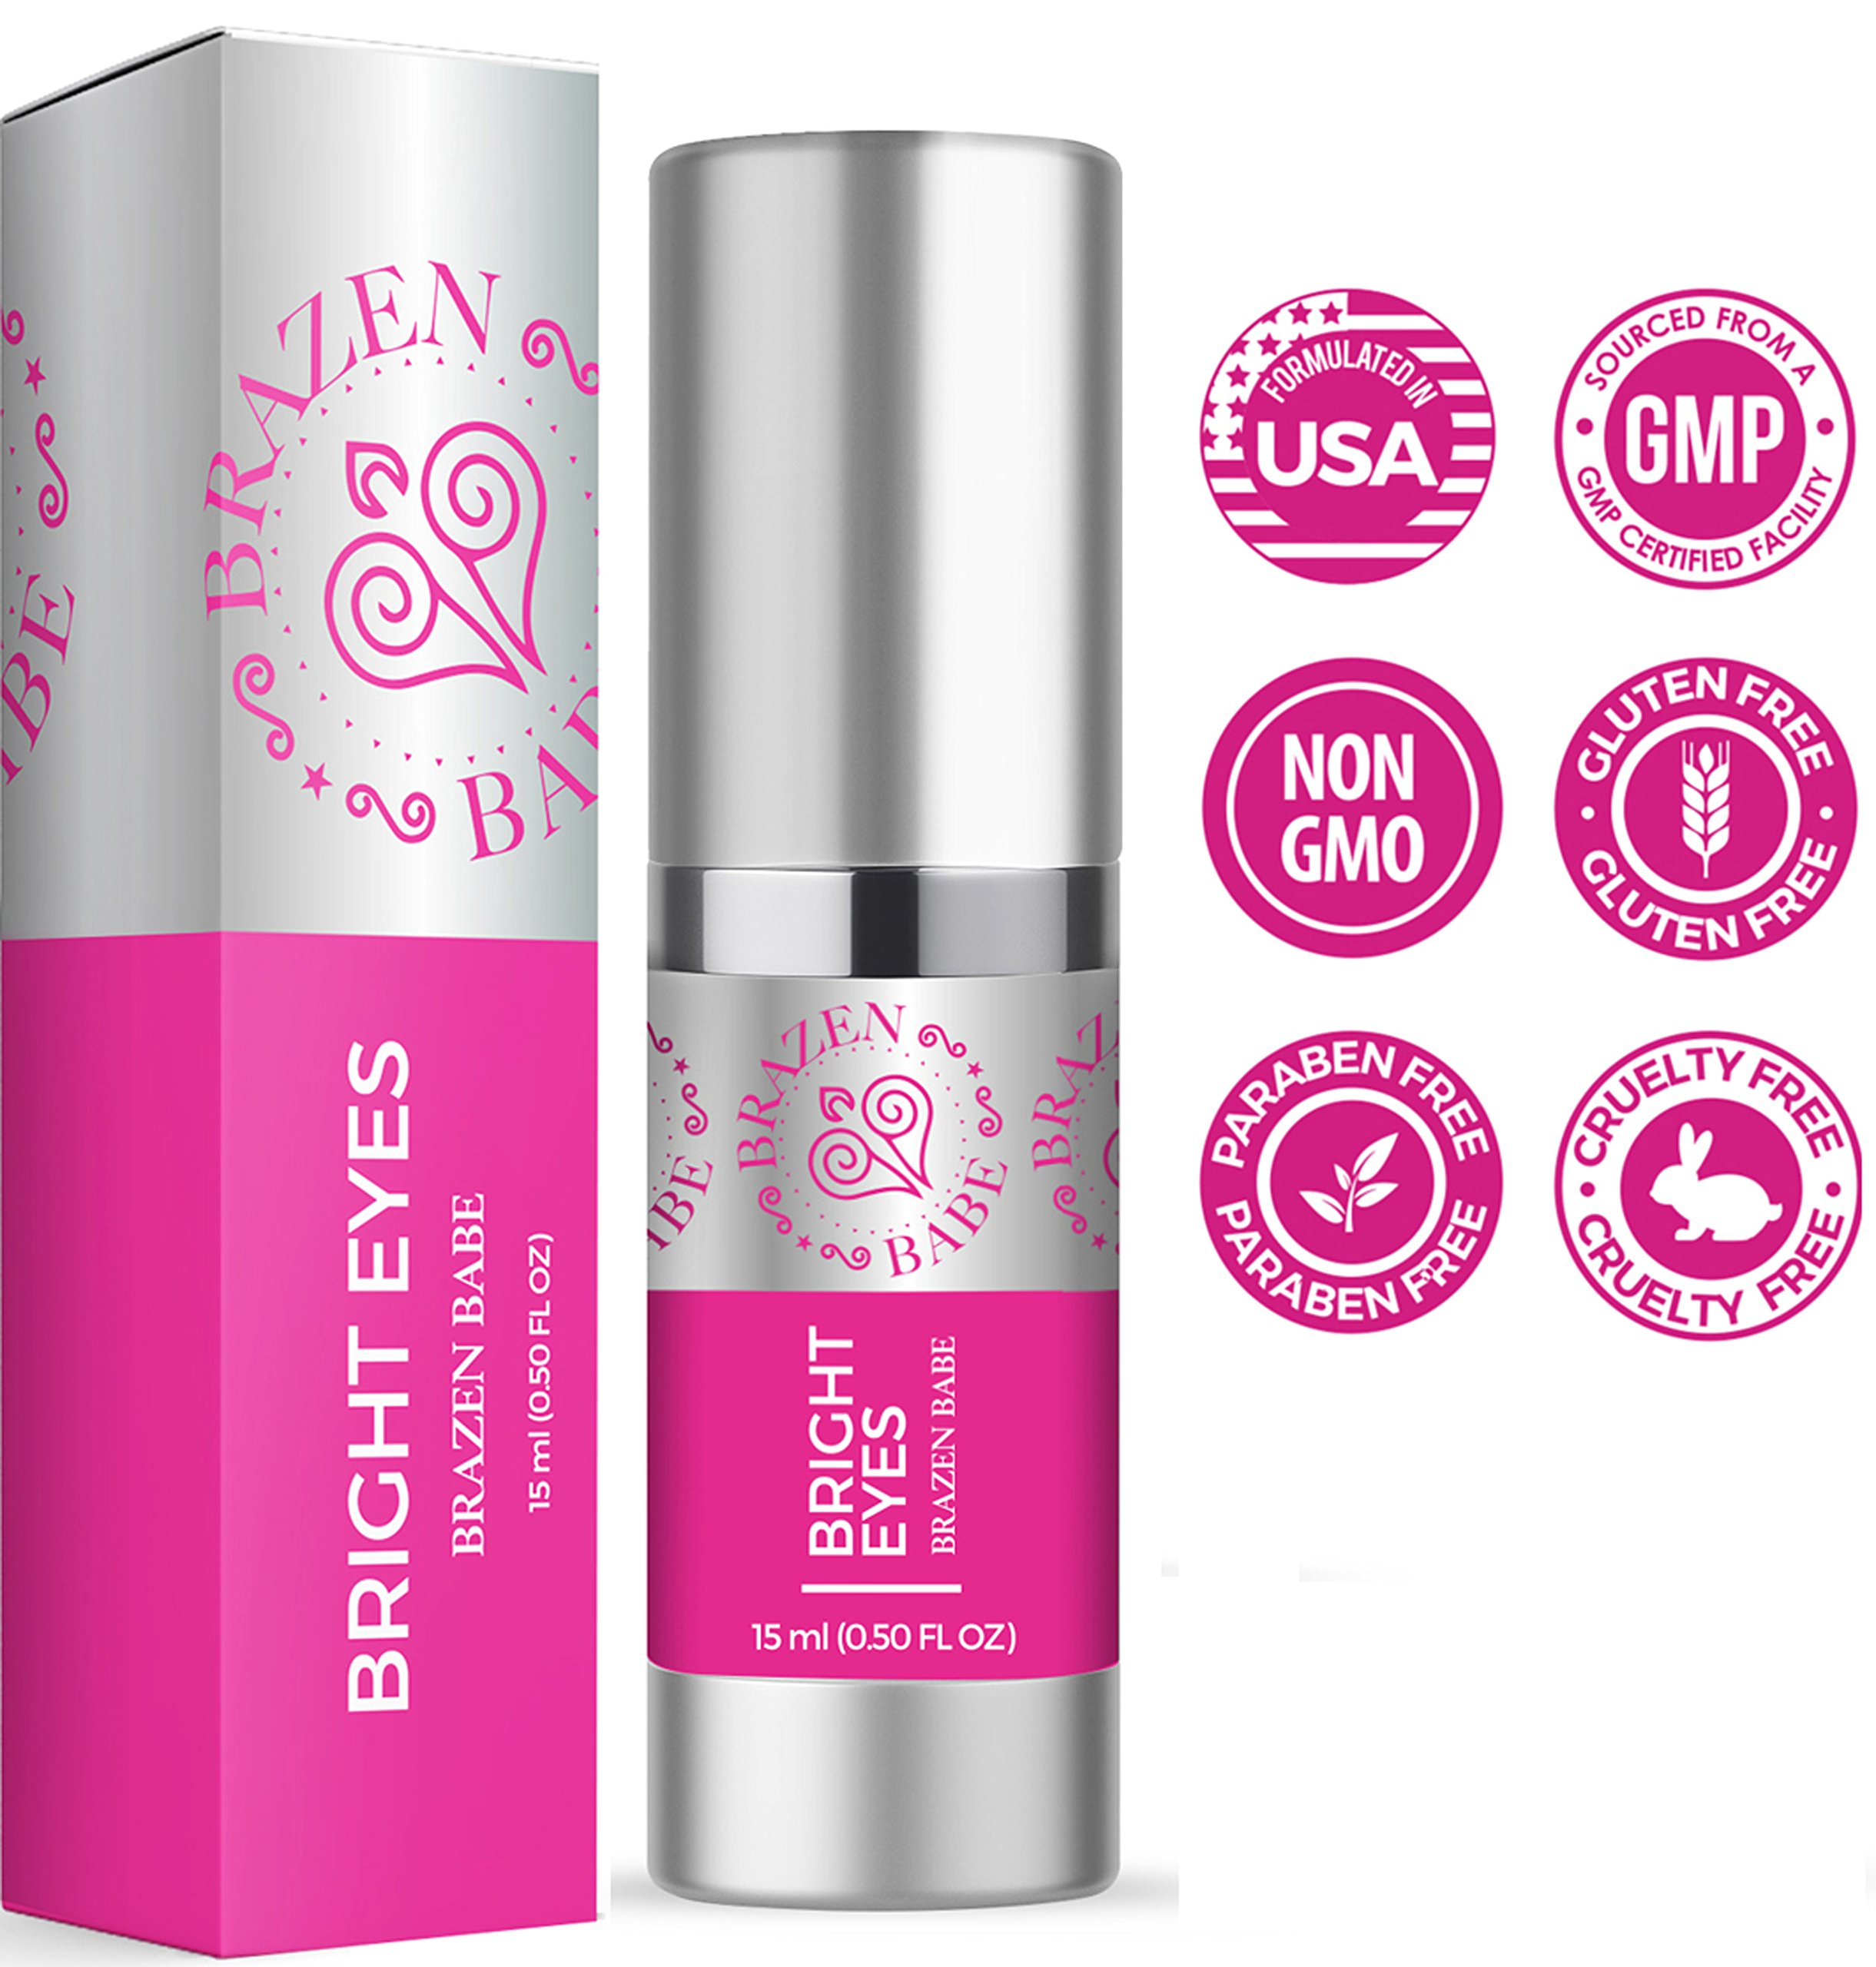 Eye Cream,''Bright Eyes'' by Brazen Babe- Eliminates Dark Circles, Puffiness, Fine Lines & Wrinkles-Scientifically Proven, Natural Moisturizing Treatment Brightens and Tightens by Brazen Babe (Image #1)